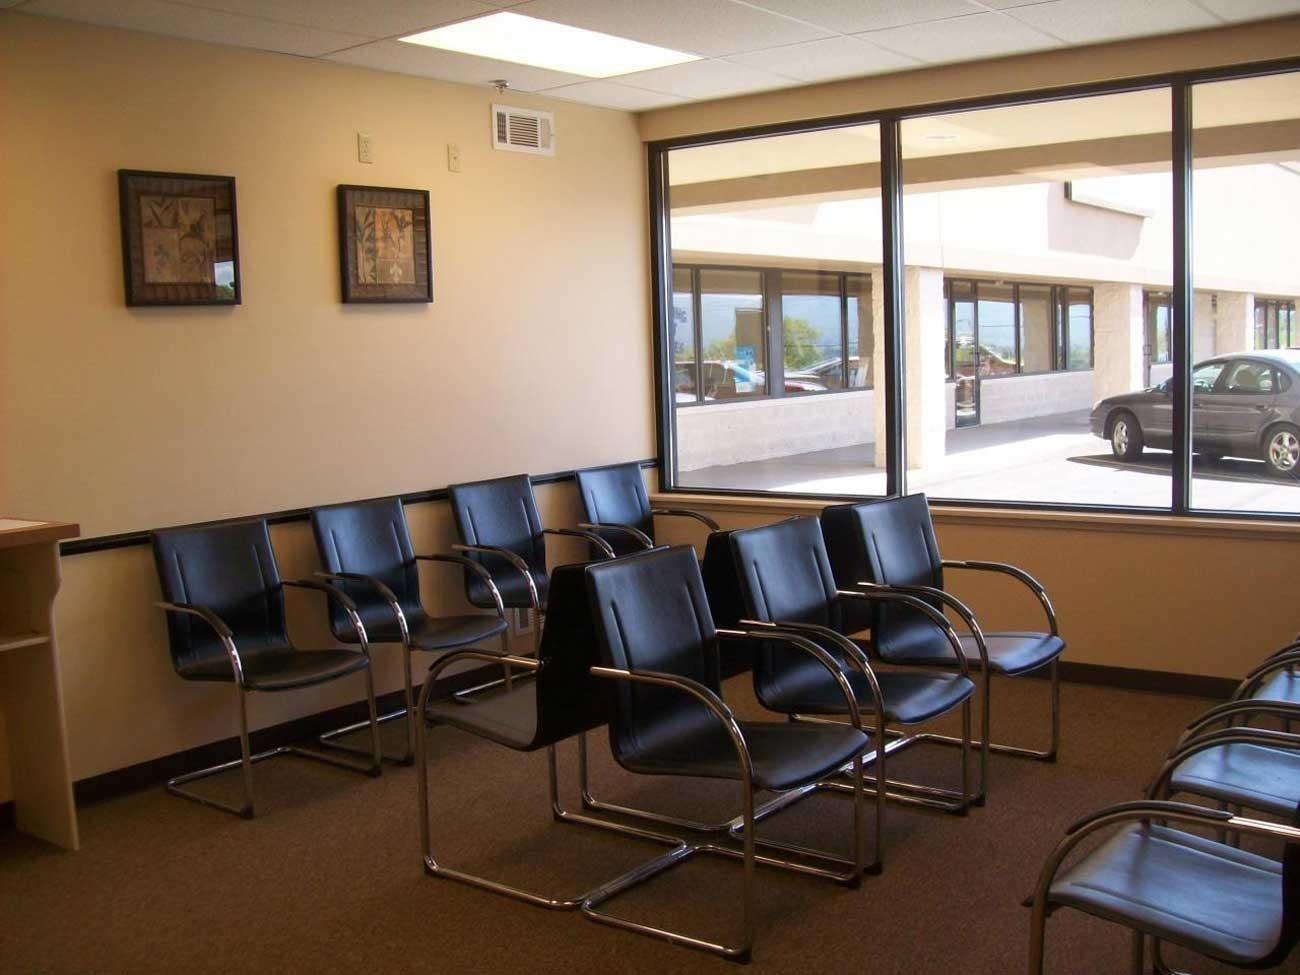 Used Waiting Room Furniture Medical Office Layouts